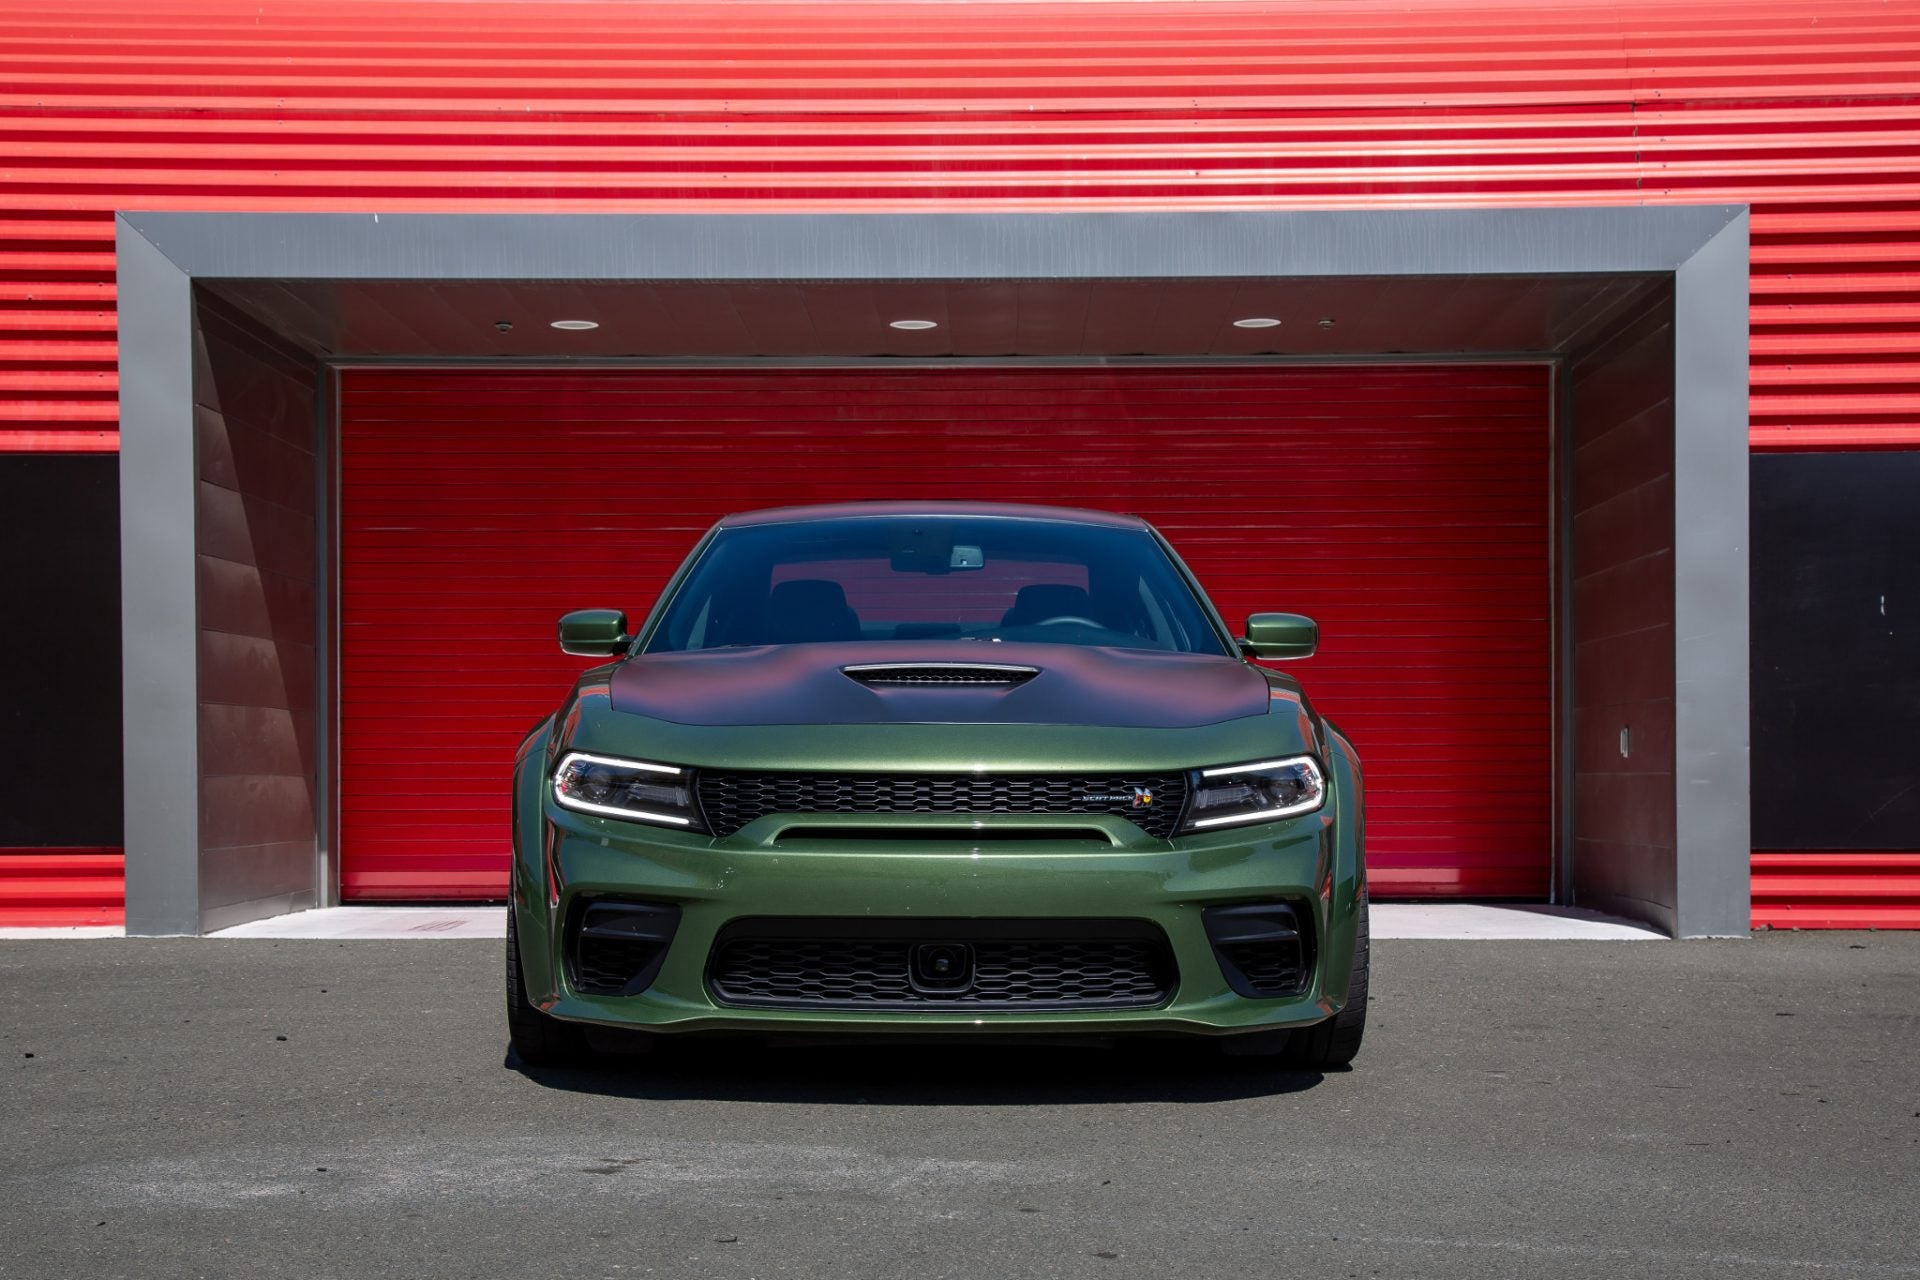 Dodge Charger Widebodies Roar into the Fray